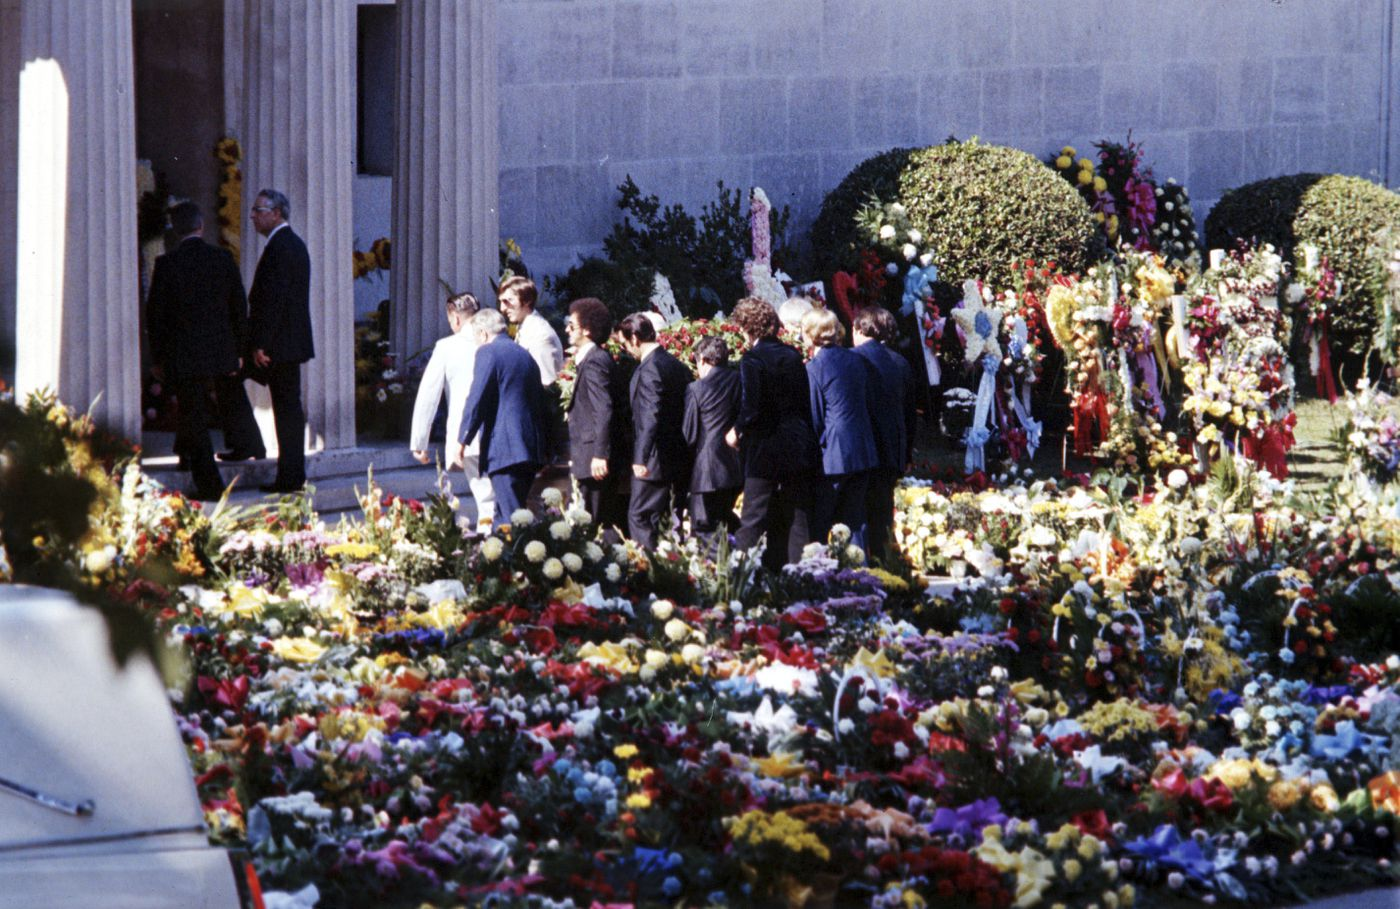 Funerals For Iconic Singers From Elvis Presley To Michael